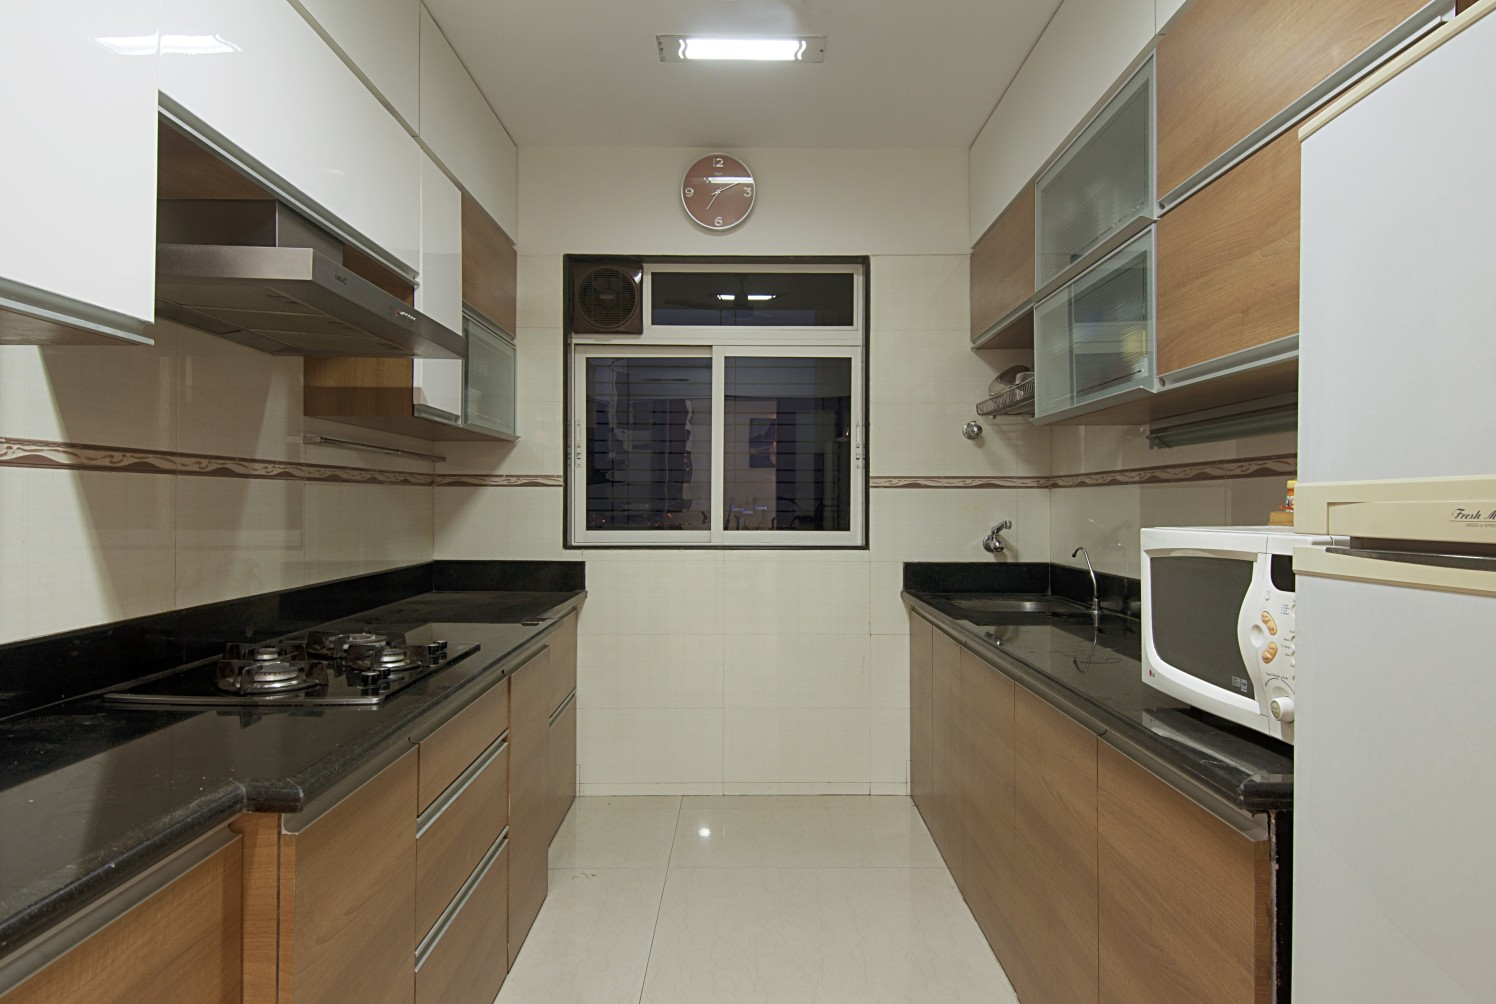 Parallel Shaped Modular Kitchen with cabinets by Milind Kapadia Modular-kitchen Contemporary | Interior Design Photos & Ideas